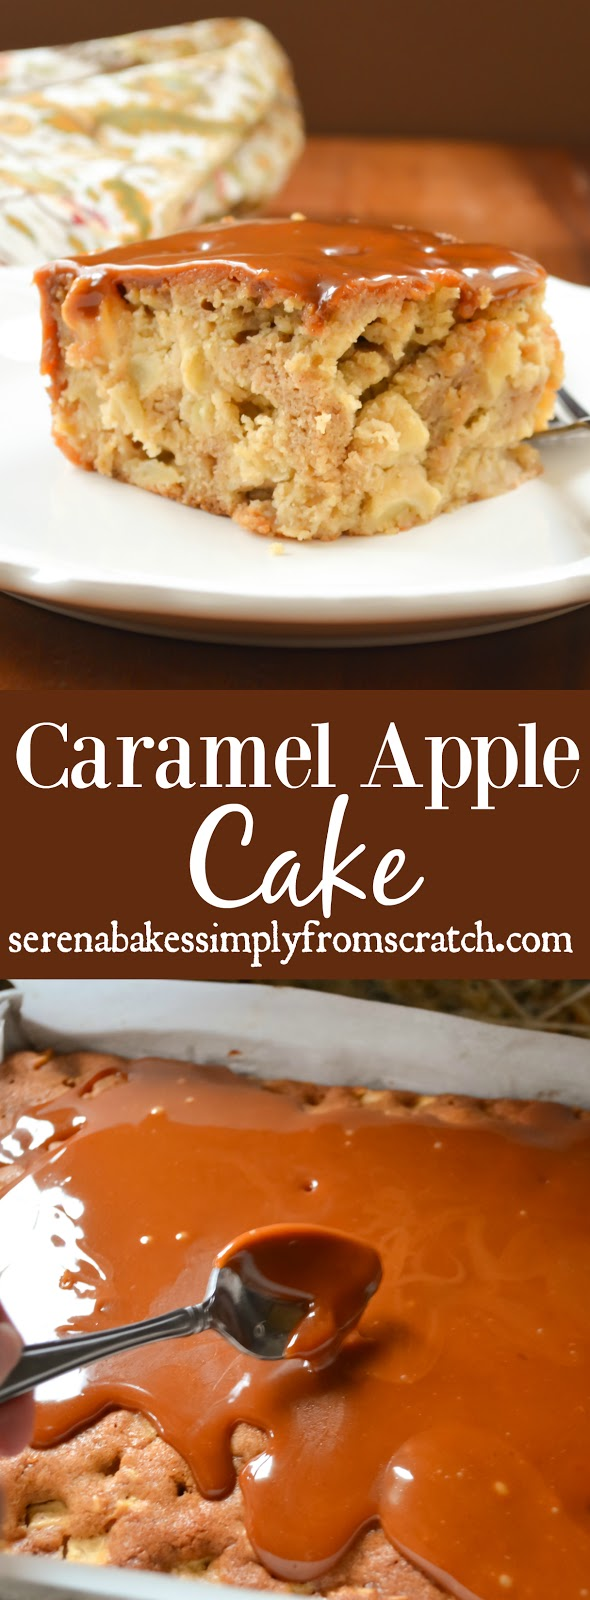 Caramel Apple Cake Covered In Homemade So Good And Recipe Includes